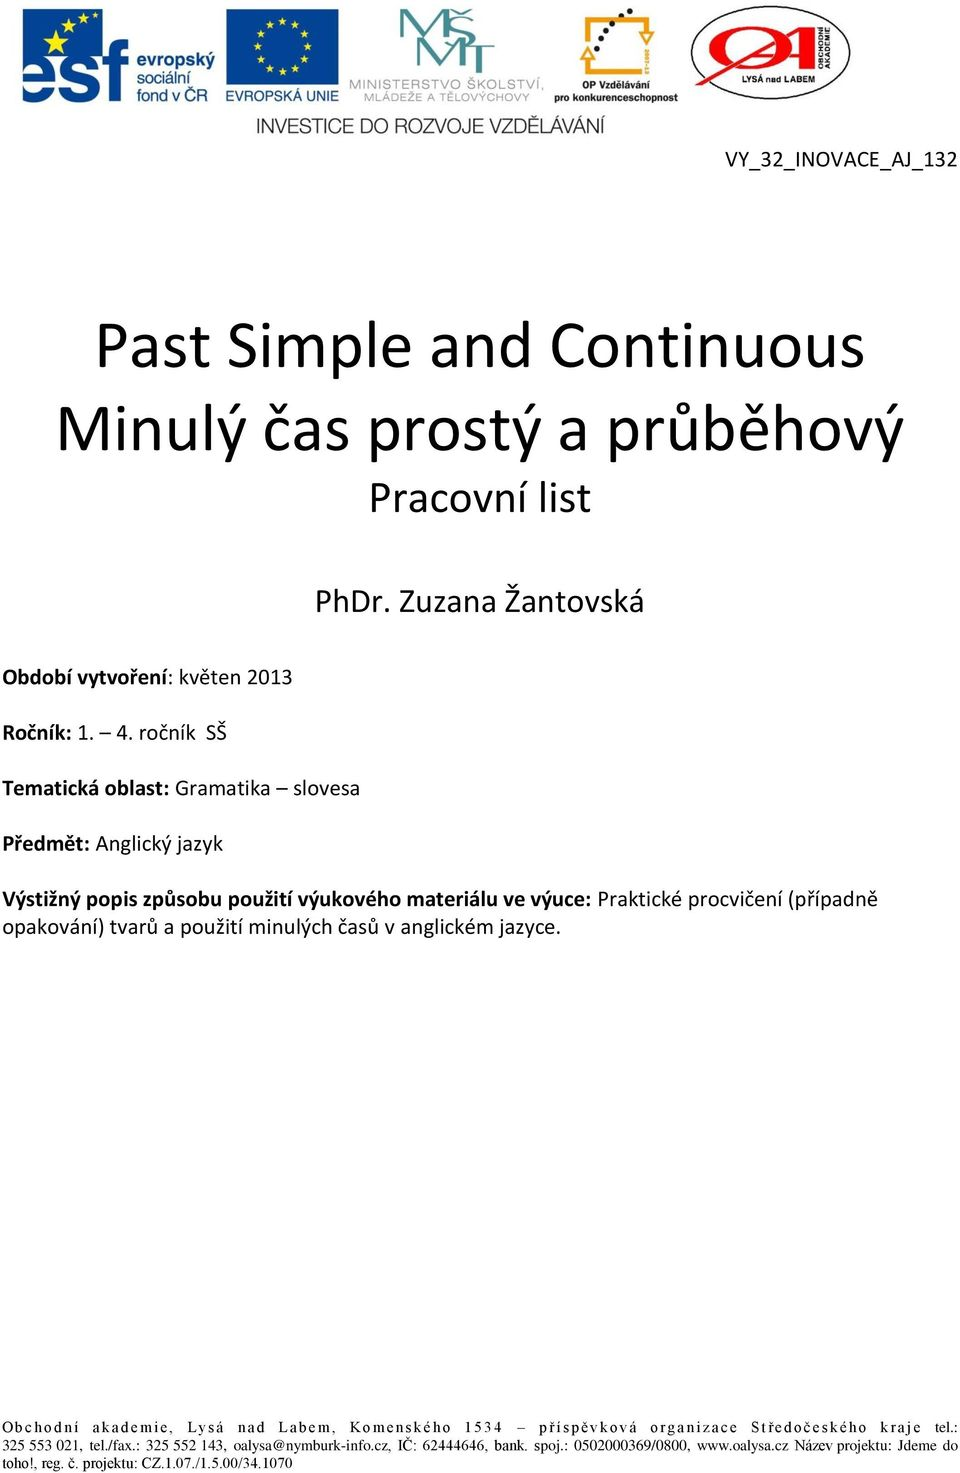 Past Simple And Continuous Minuly Cas Prosty A Prubehovy Pracovni